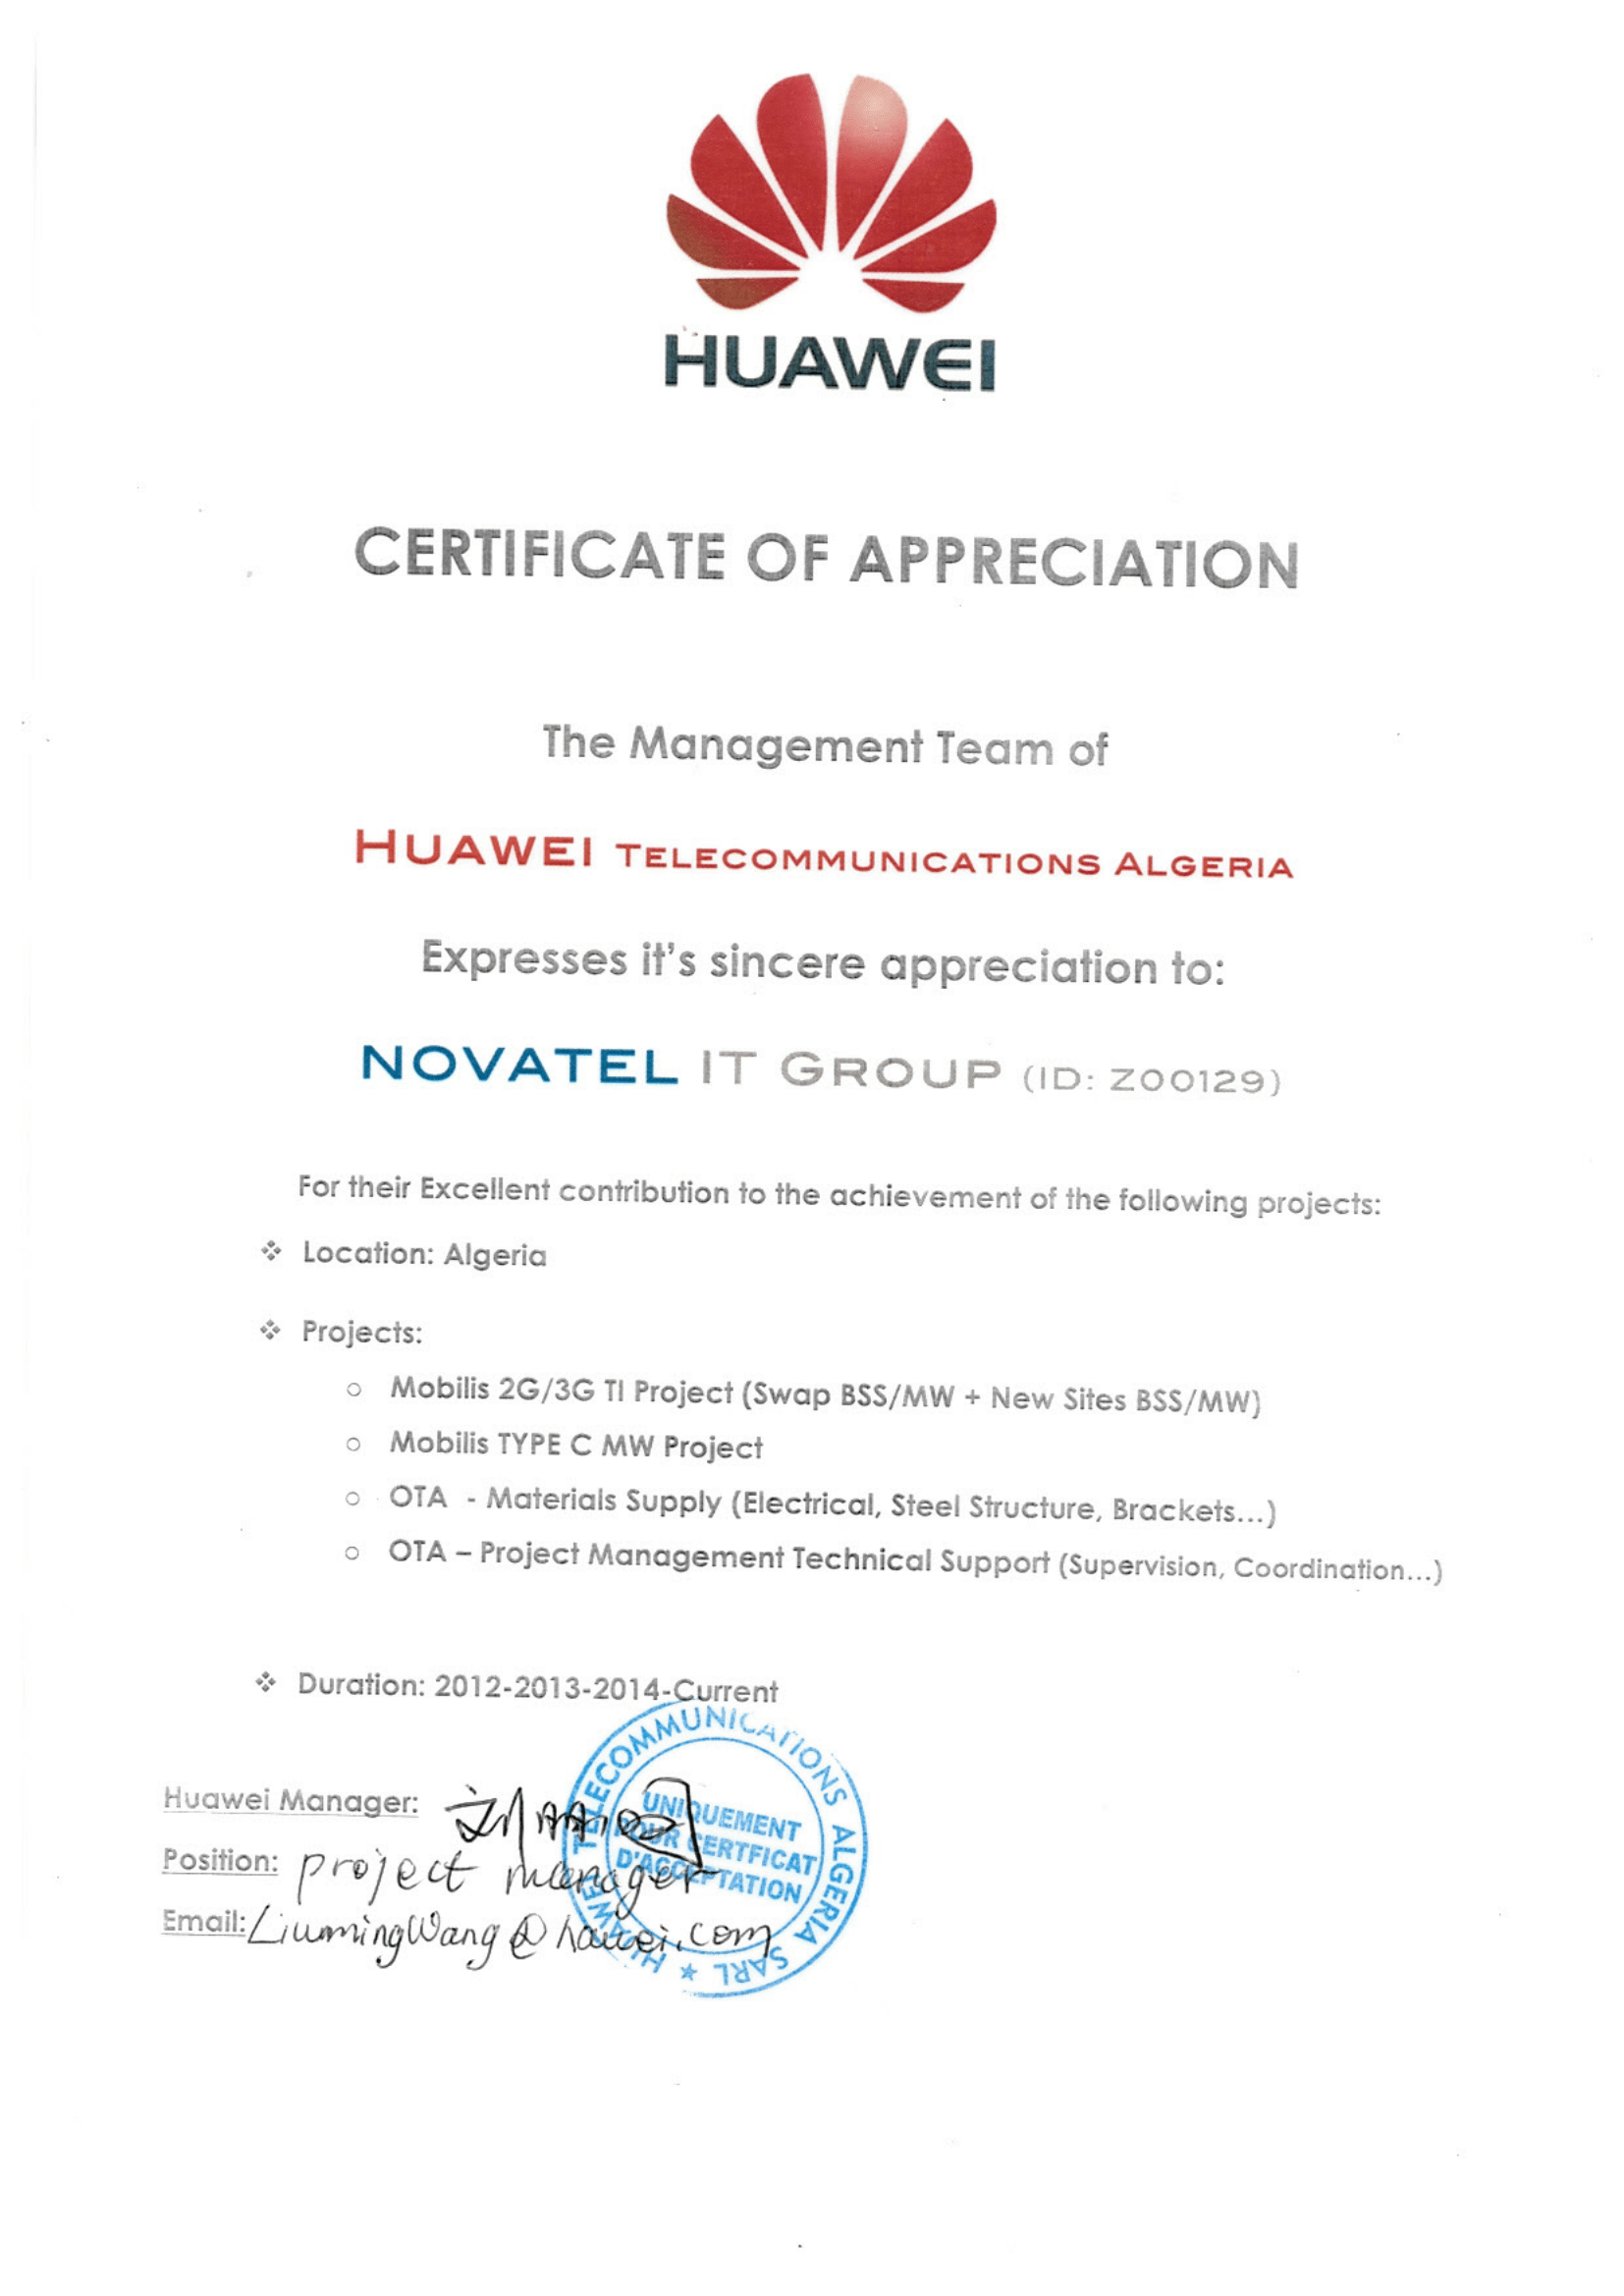 2-2-3-huaweialg_novatel_appreciation-letter_ti_materials_outsourcing-1